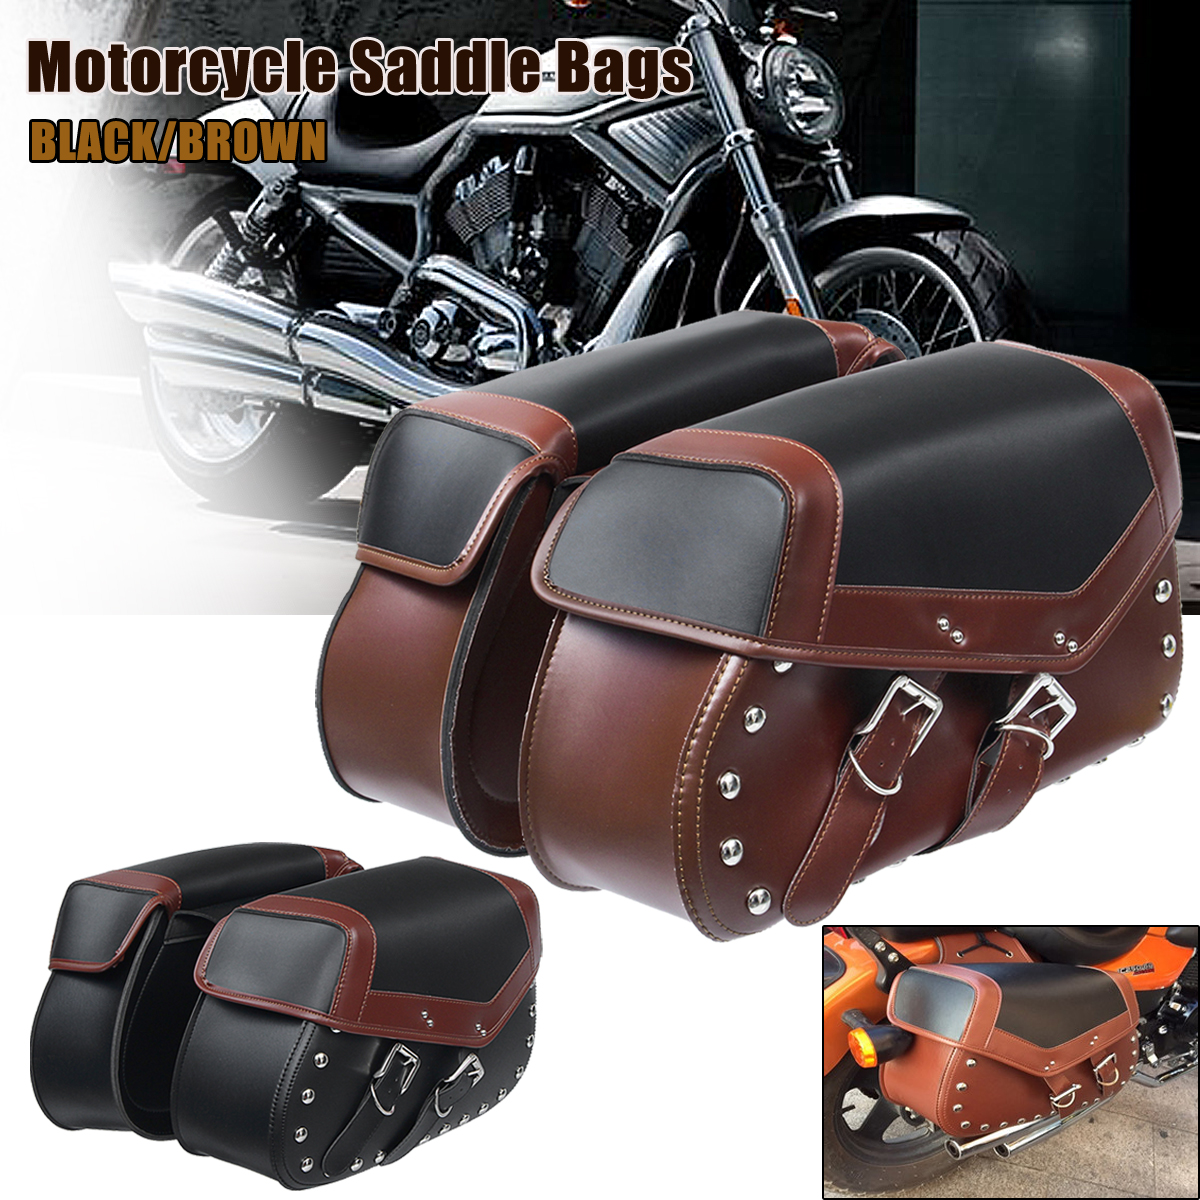 2 x Universal Motorcycle Saddle Bags Bike Side Storage Fork Tool Pouch for Harley for Honda